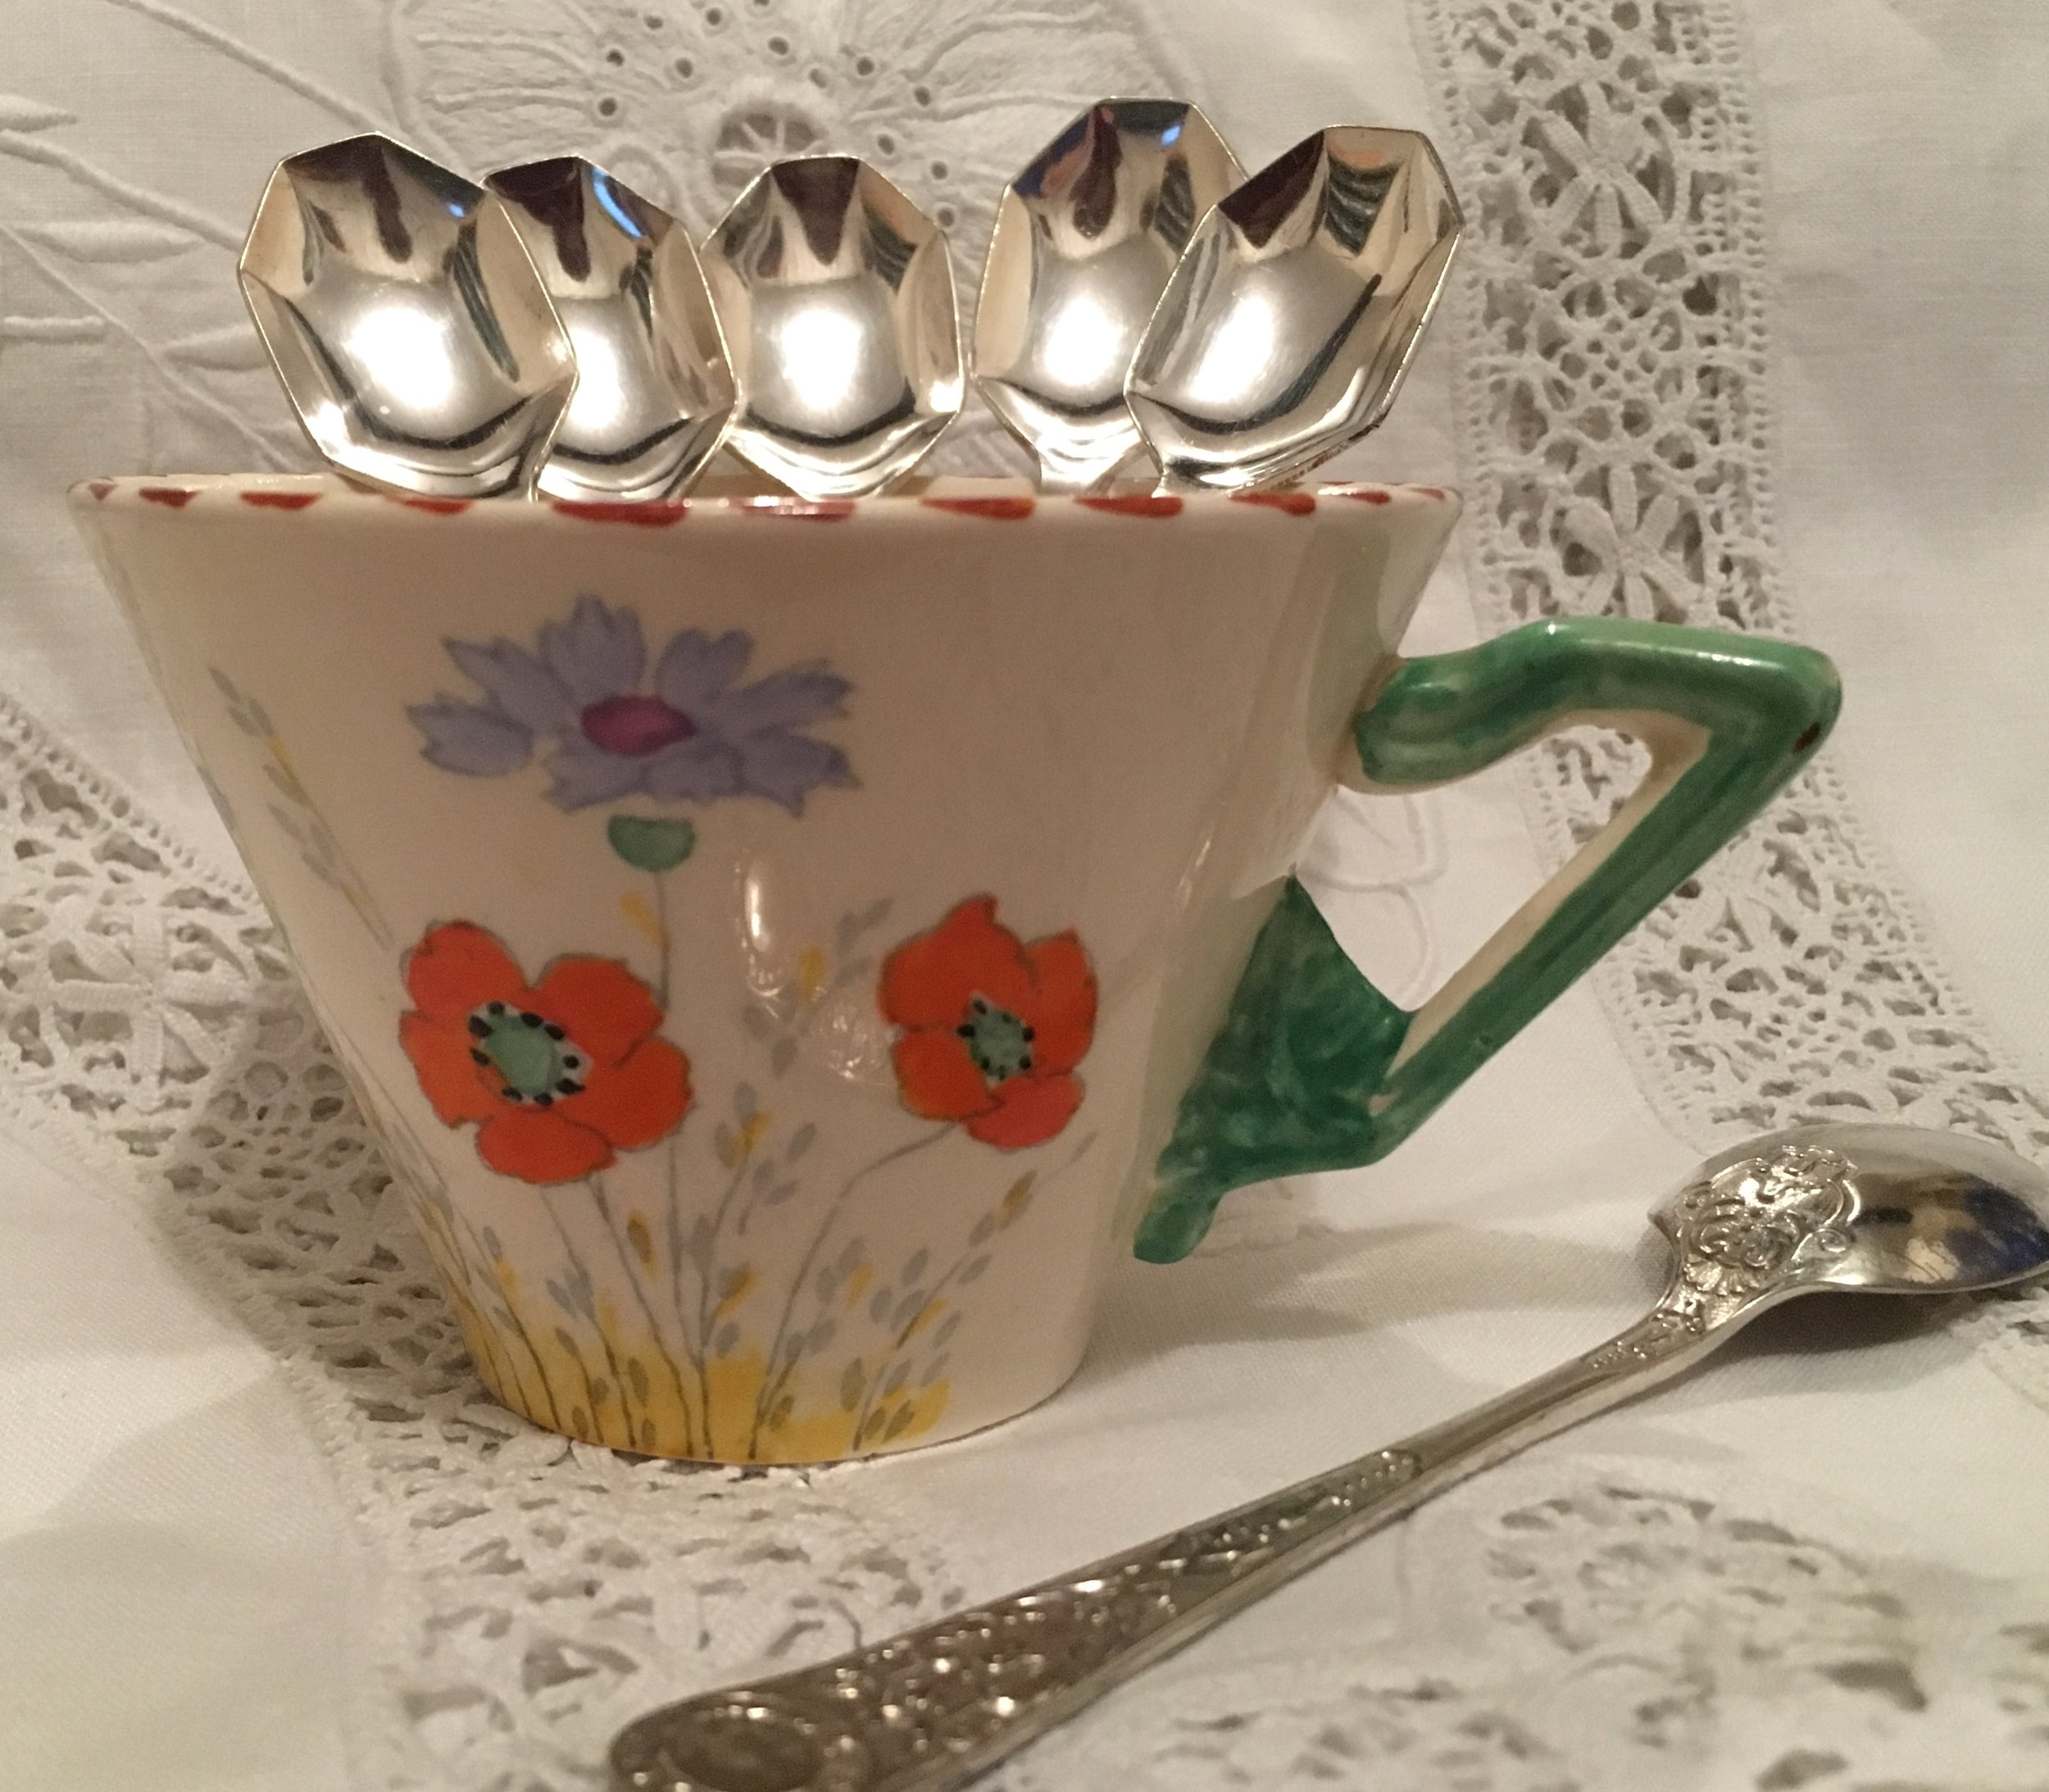 Six beautiful, vintage teaspoons in antique tea cup.